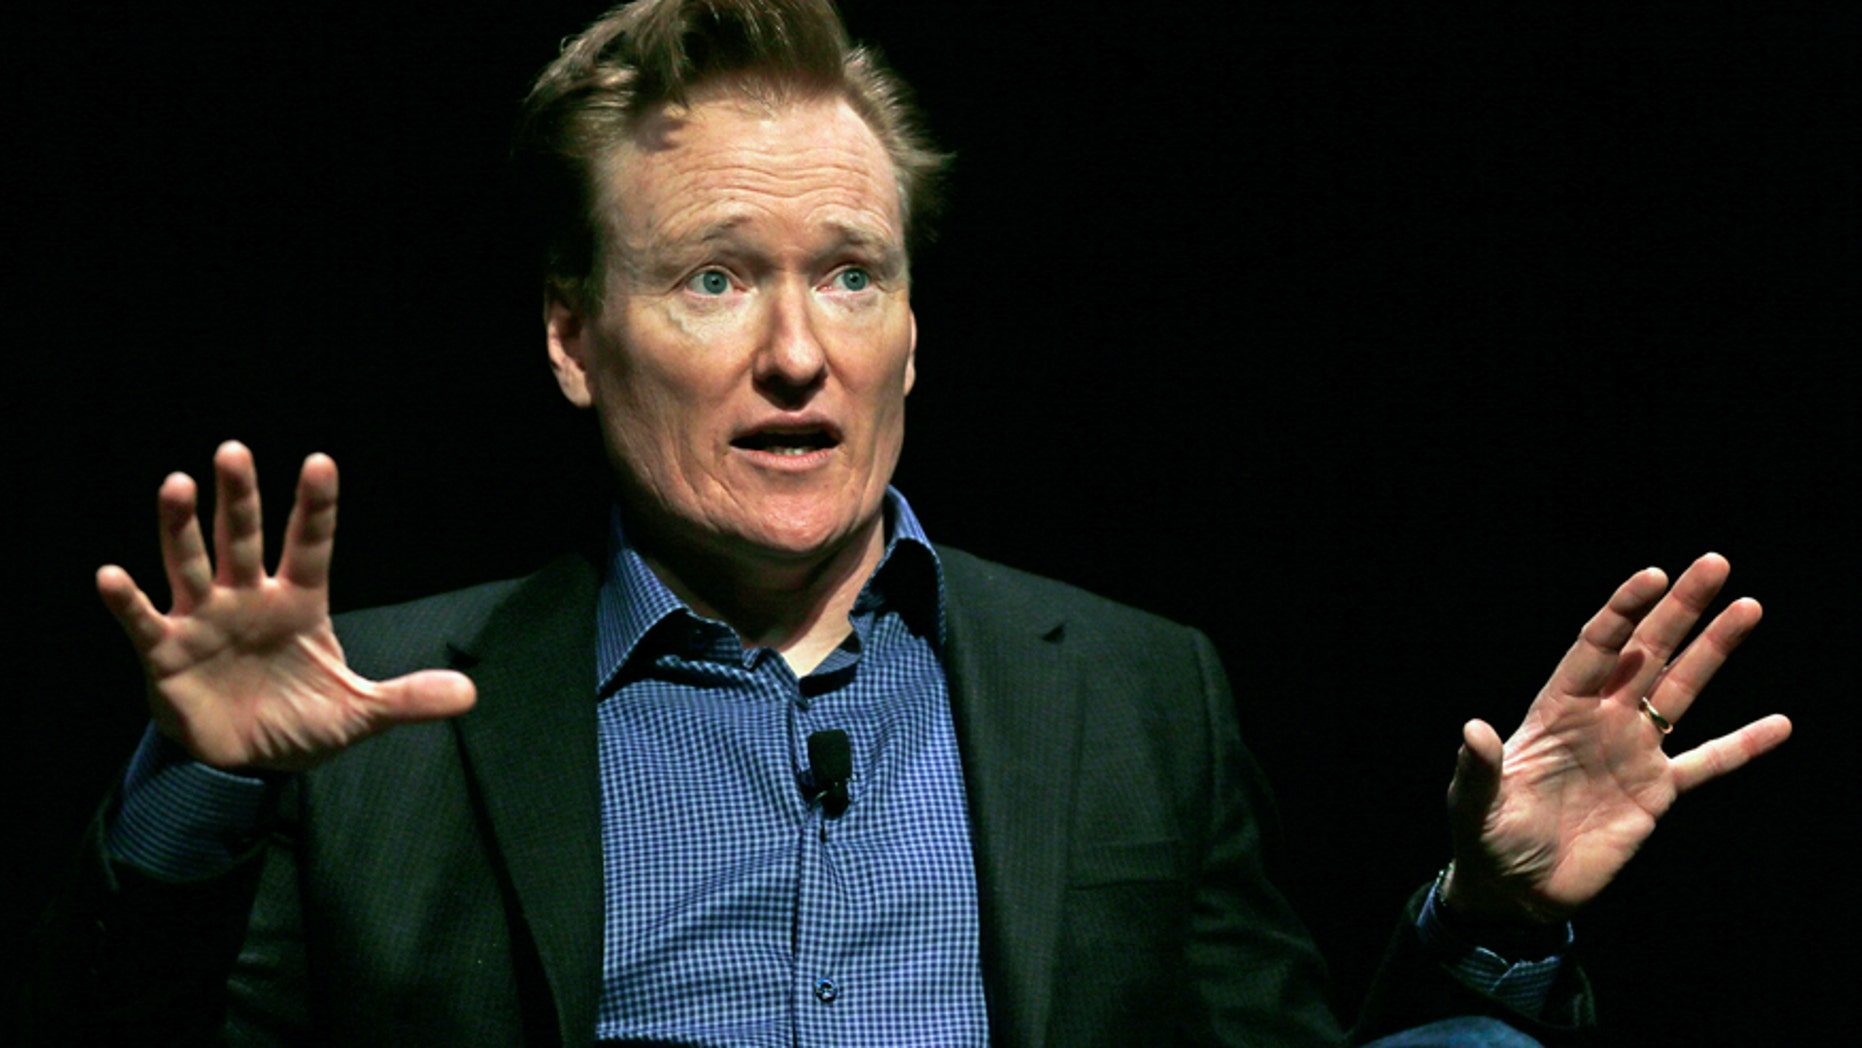 In this Feb. 12, 2016 file photo television host Conan O'Brien gestures to the audience at Sanders Theatre on the campus of Harvard University in Cambridge. O'Brien is vigorously defending himself from plagiarism allegations by a writer who accused him of ripping off punchlines about Caitlyn Jenner, Tom Brady and the Washington Monument.